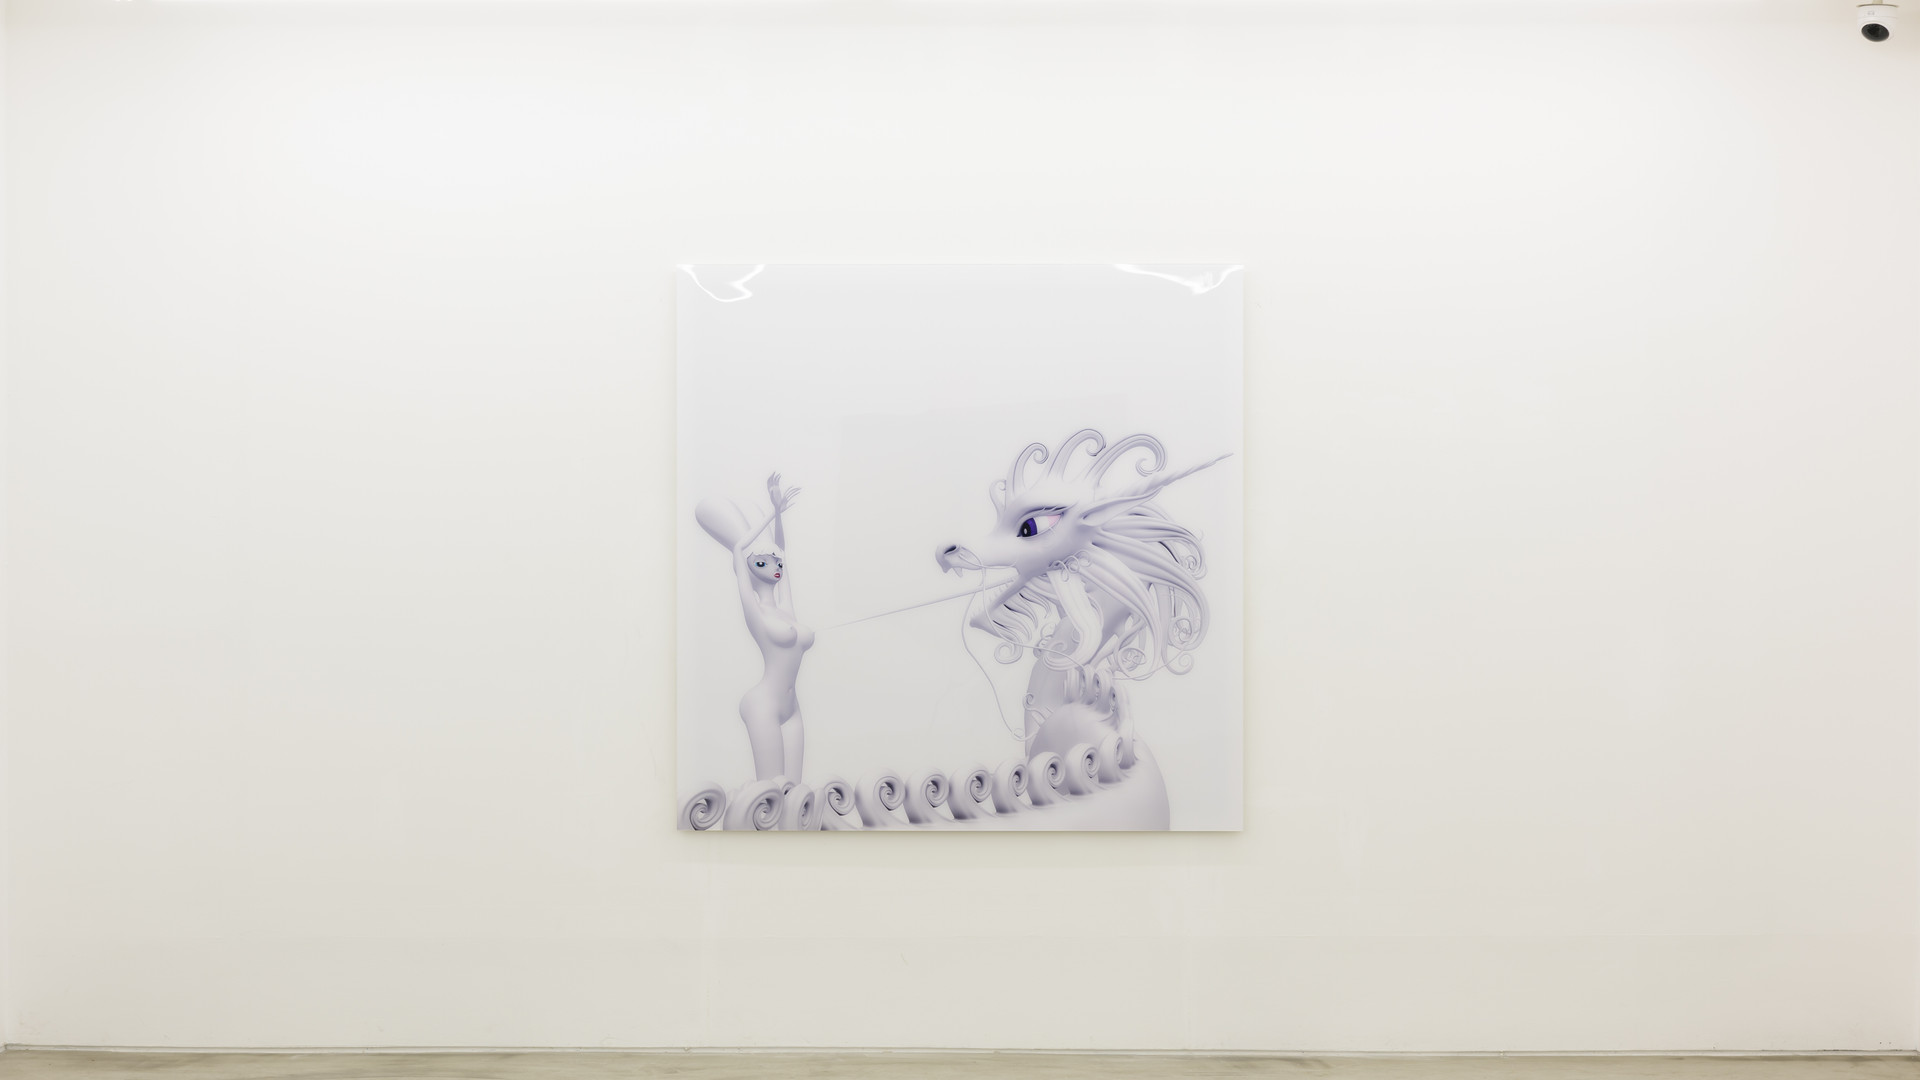 Like My Tongue, white, 2011, C print, Perspex, 165.1x165.1cm, Ed 1 of 5